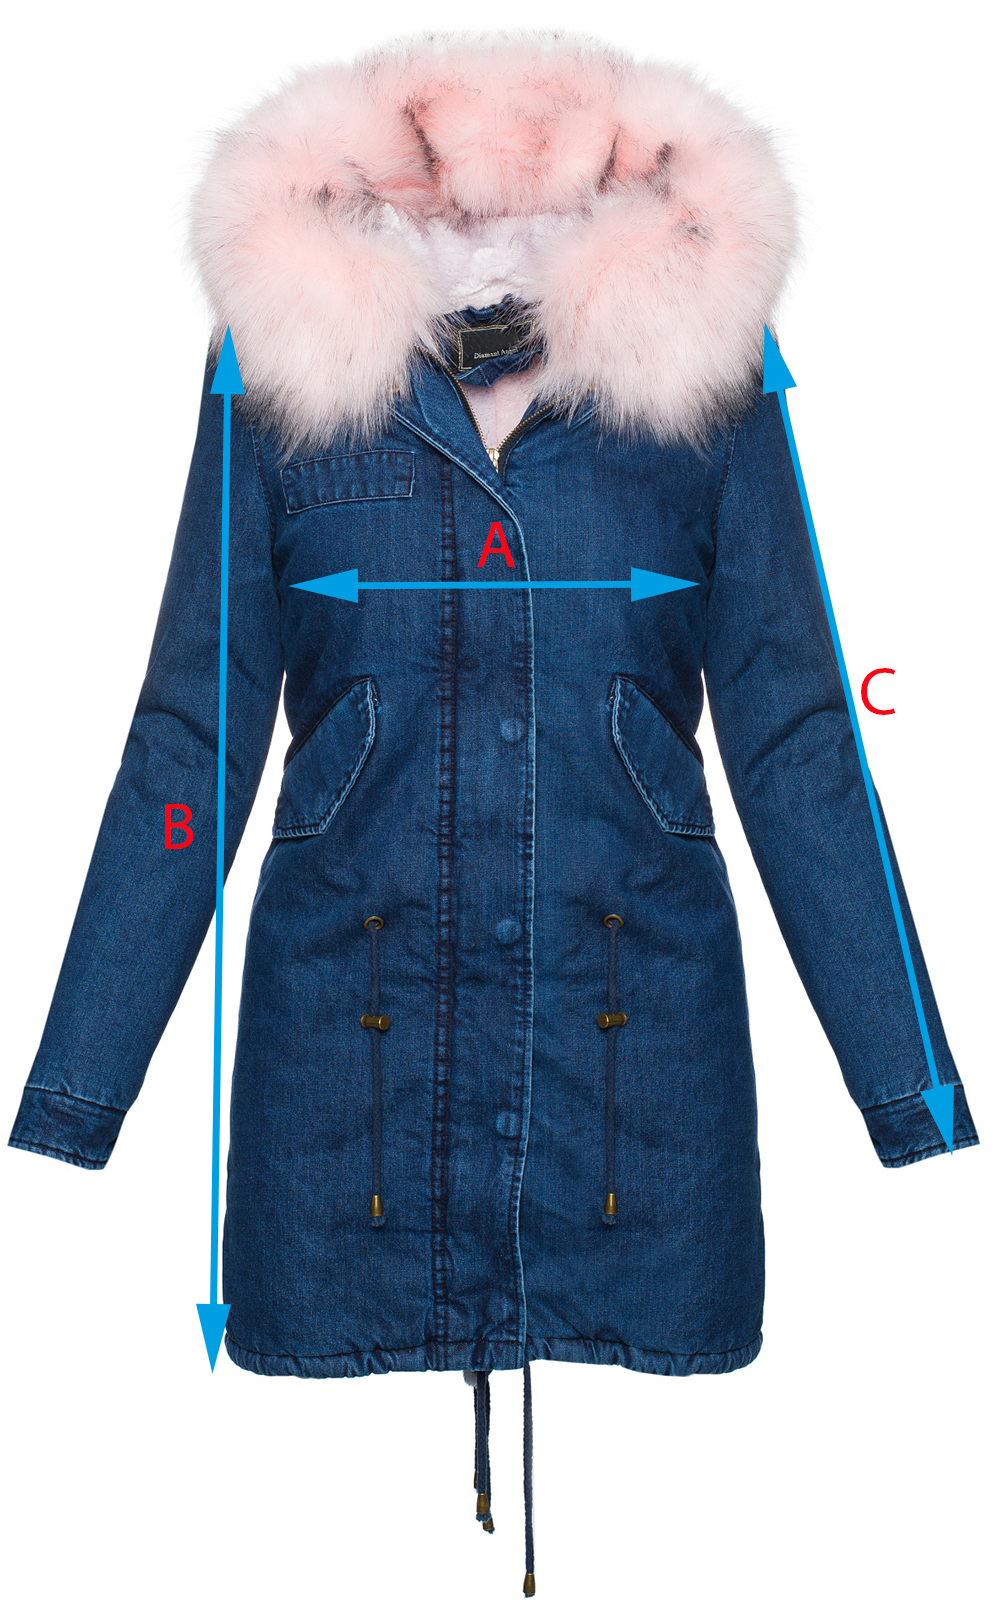 damen winter jacke jeansjacke damen mantel xxl fell kapuze damenjacke s xl d 220 ebay. Black Bedroom Furniture Sets. Home Design Ideas